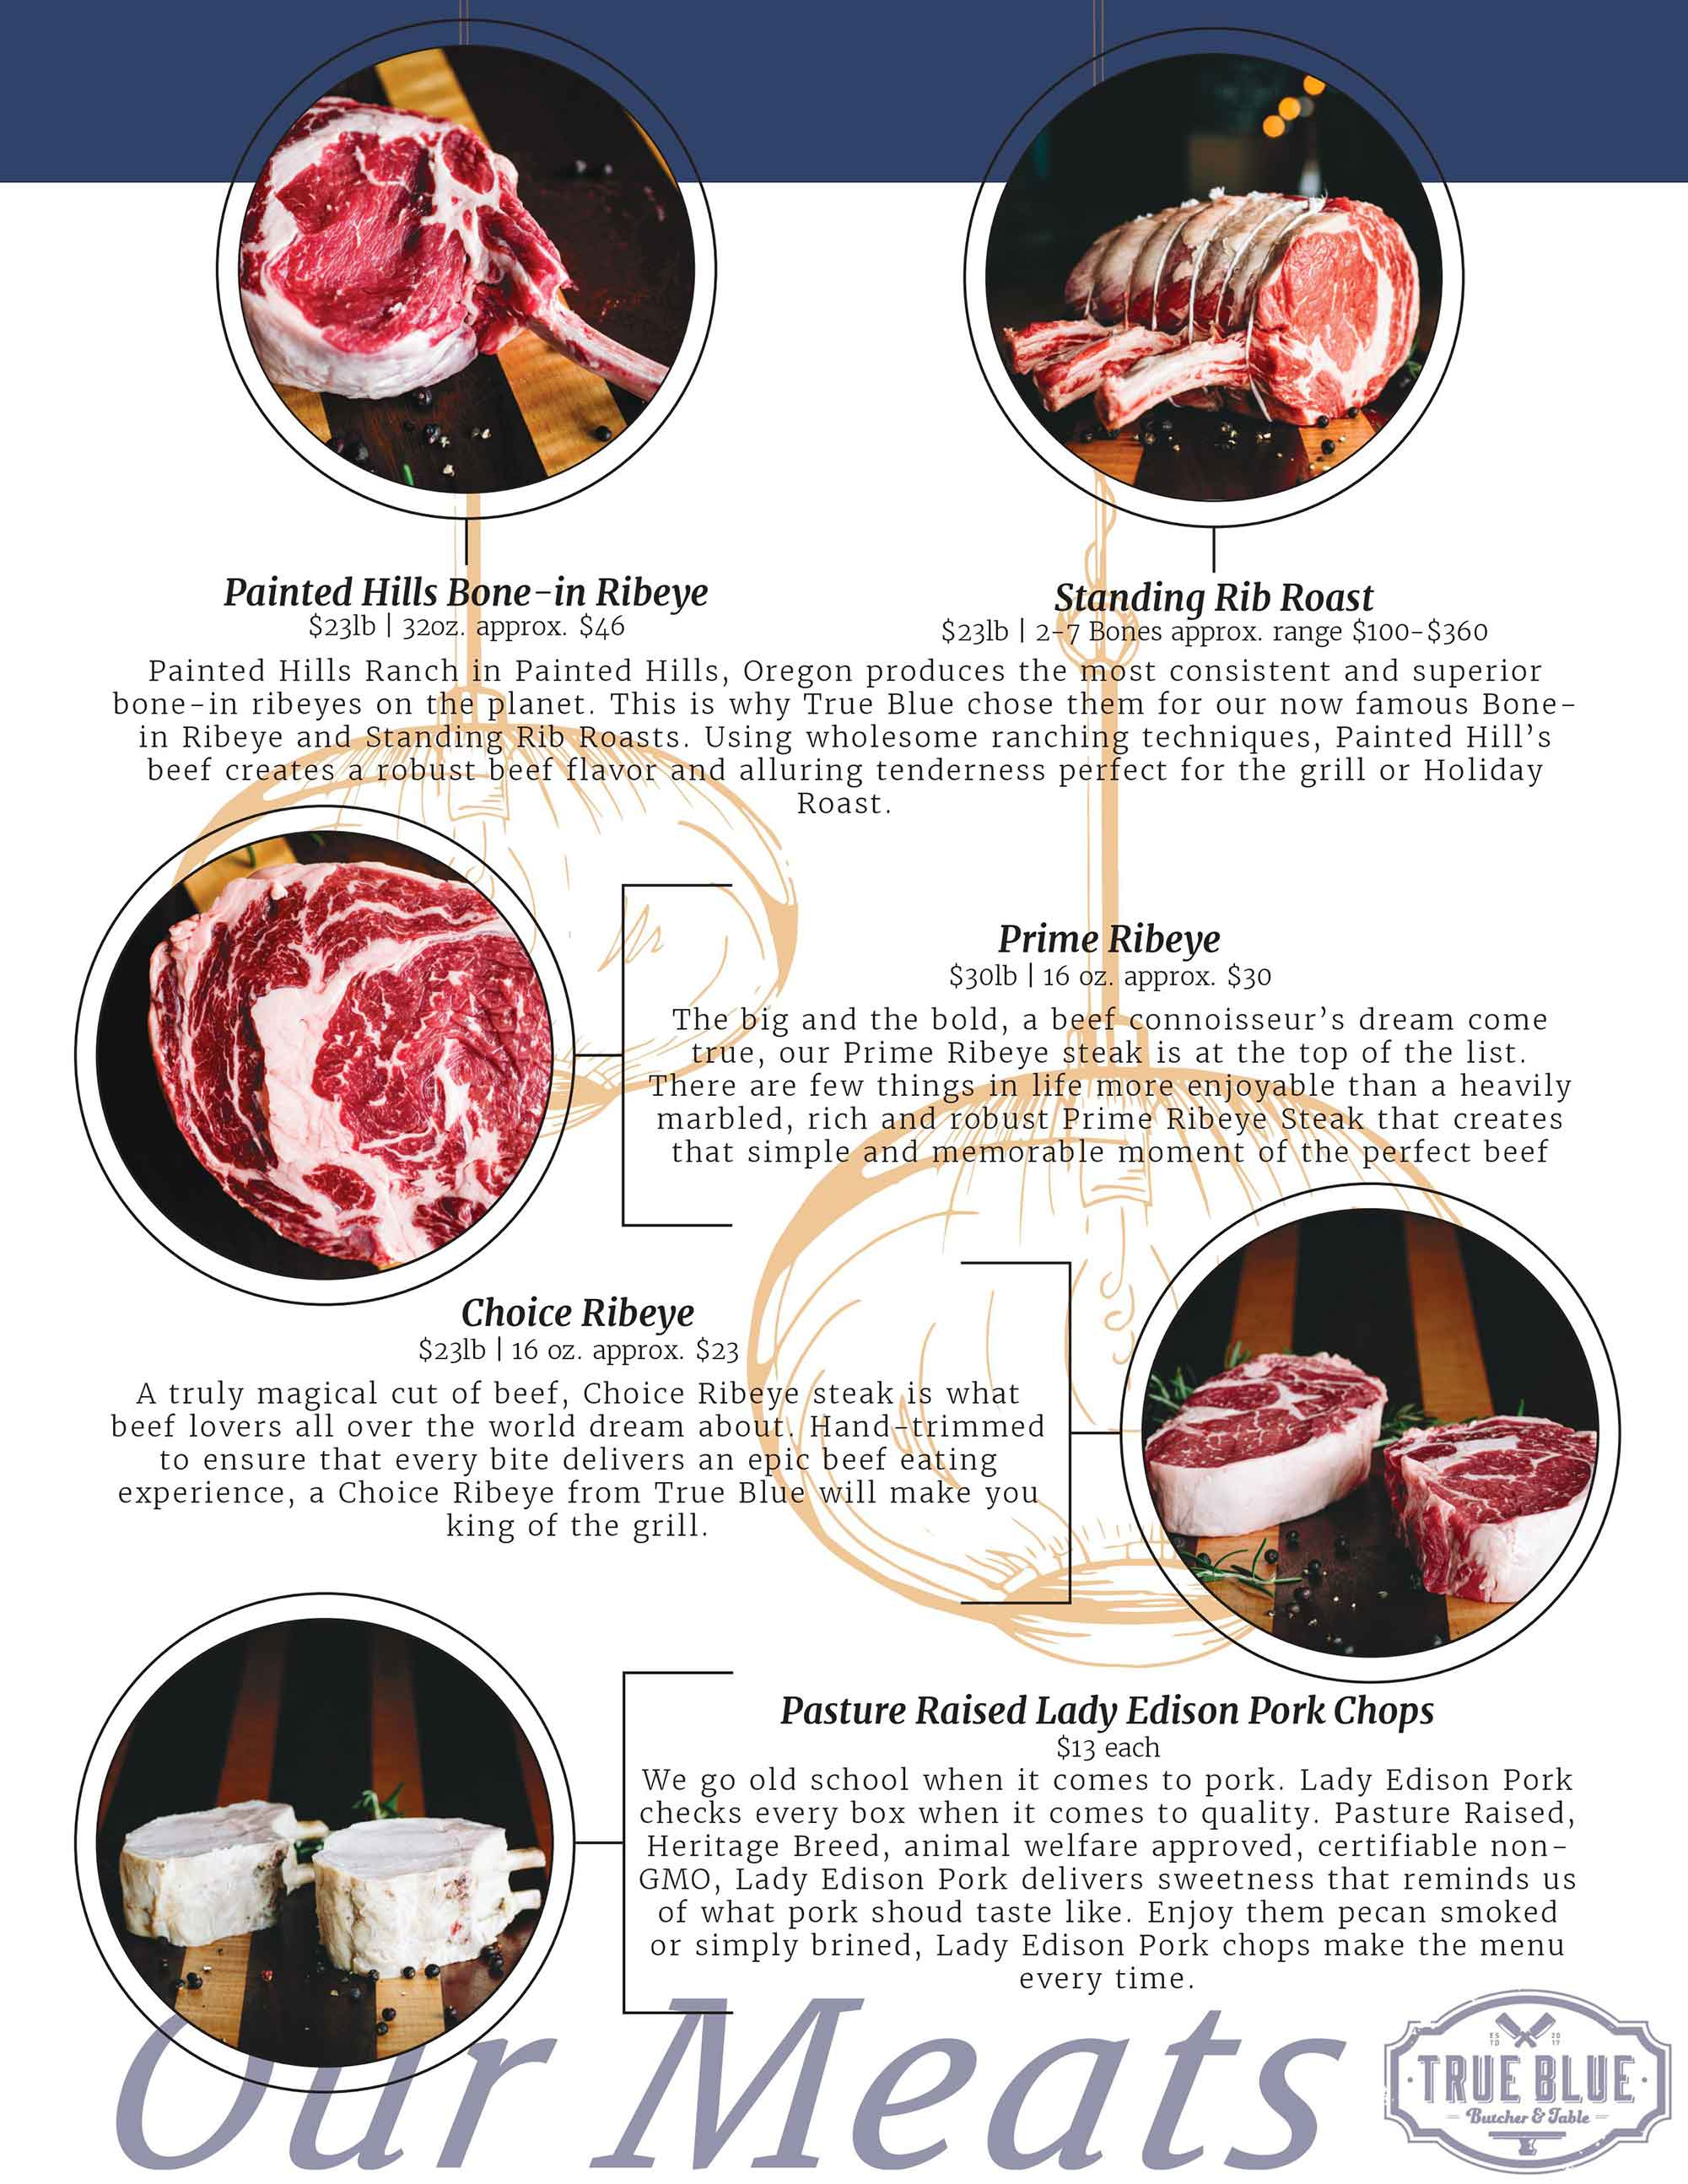 Painted Hills Bone-in Ribeye, Standing Rib Roast, Prime Ribeye, Choice Ribeye, Pasture Raised Lady Edison Pork Chops